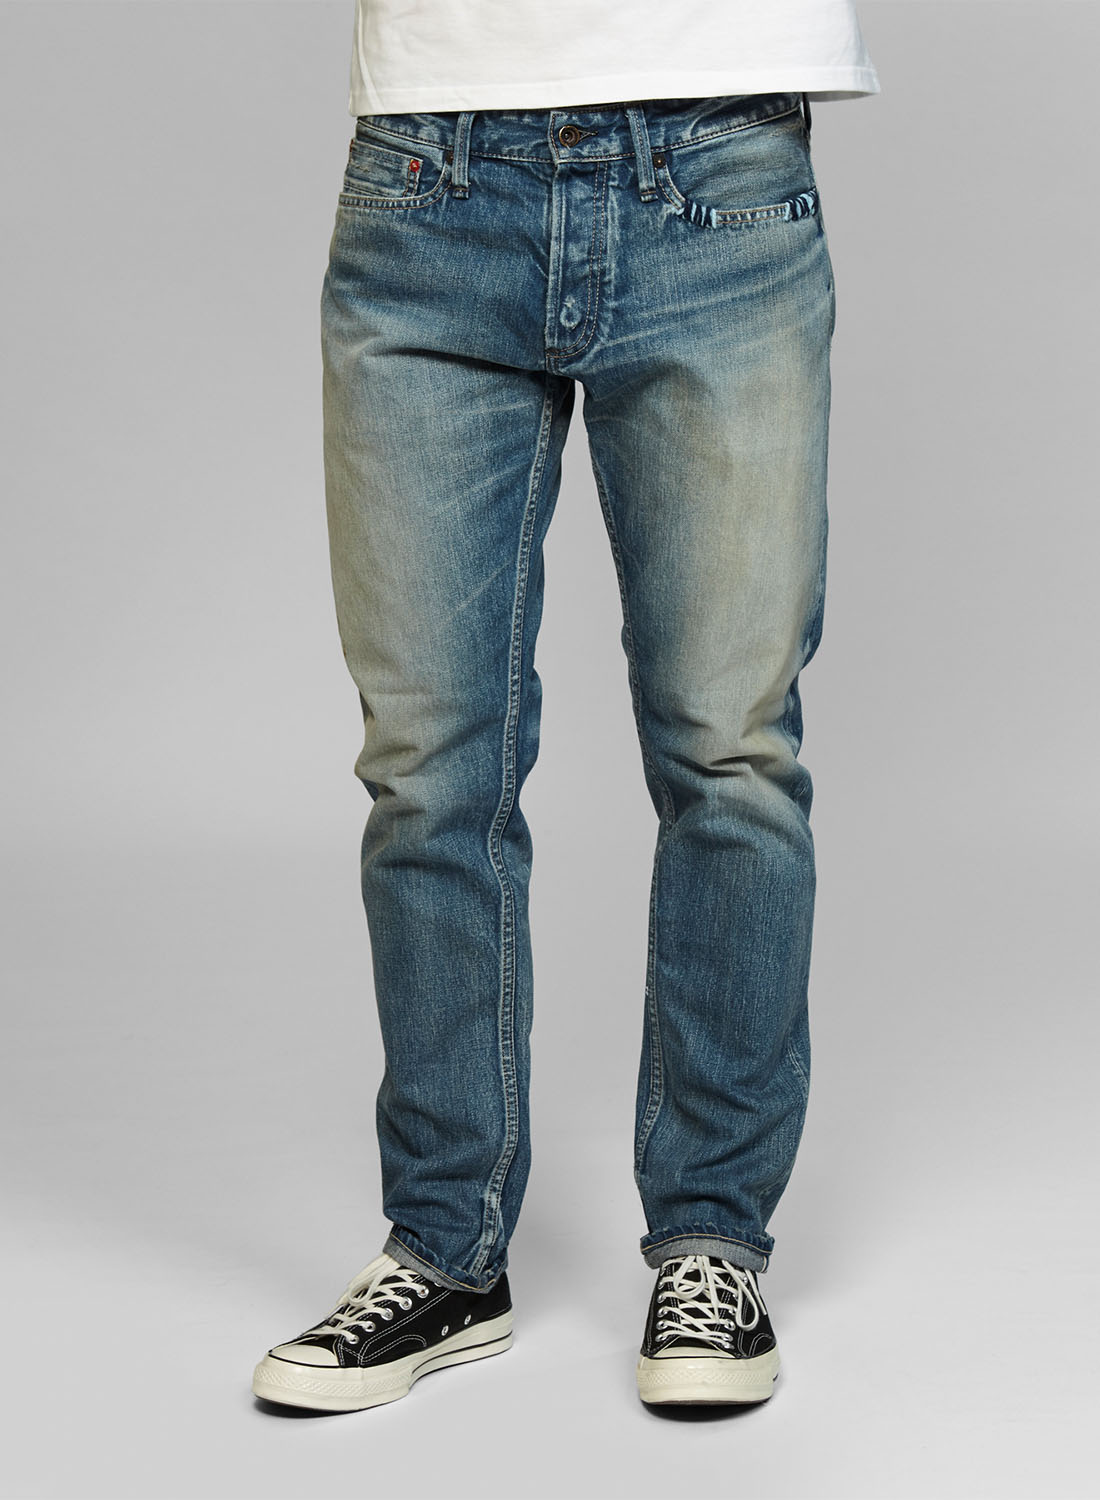 【MADE IN JAPAN DENIM】 FORGE MIJNIF